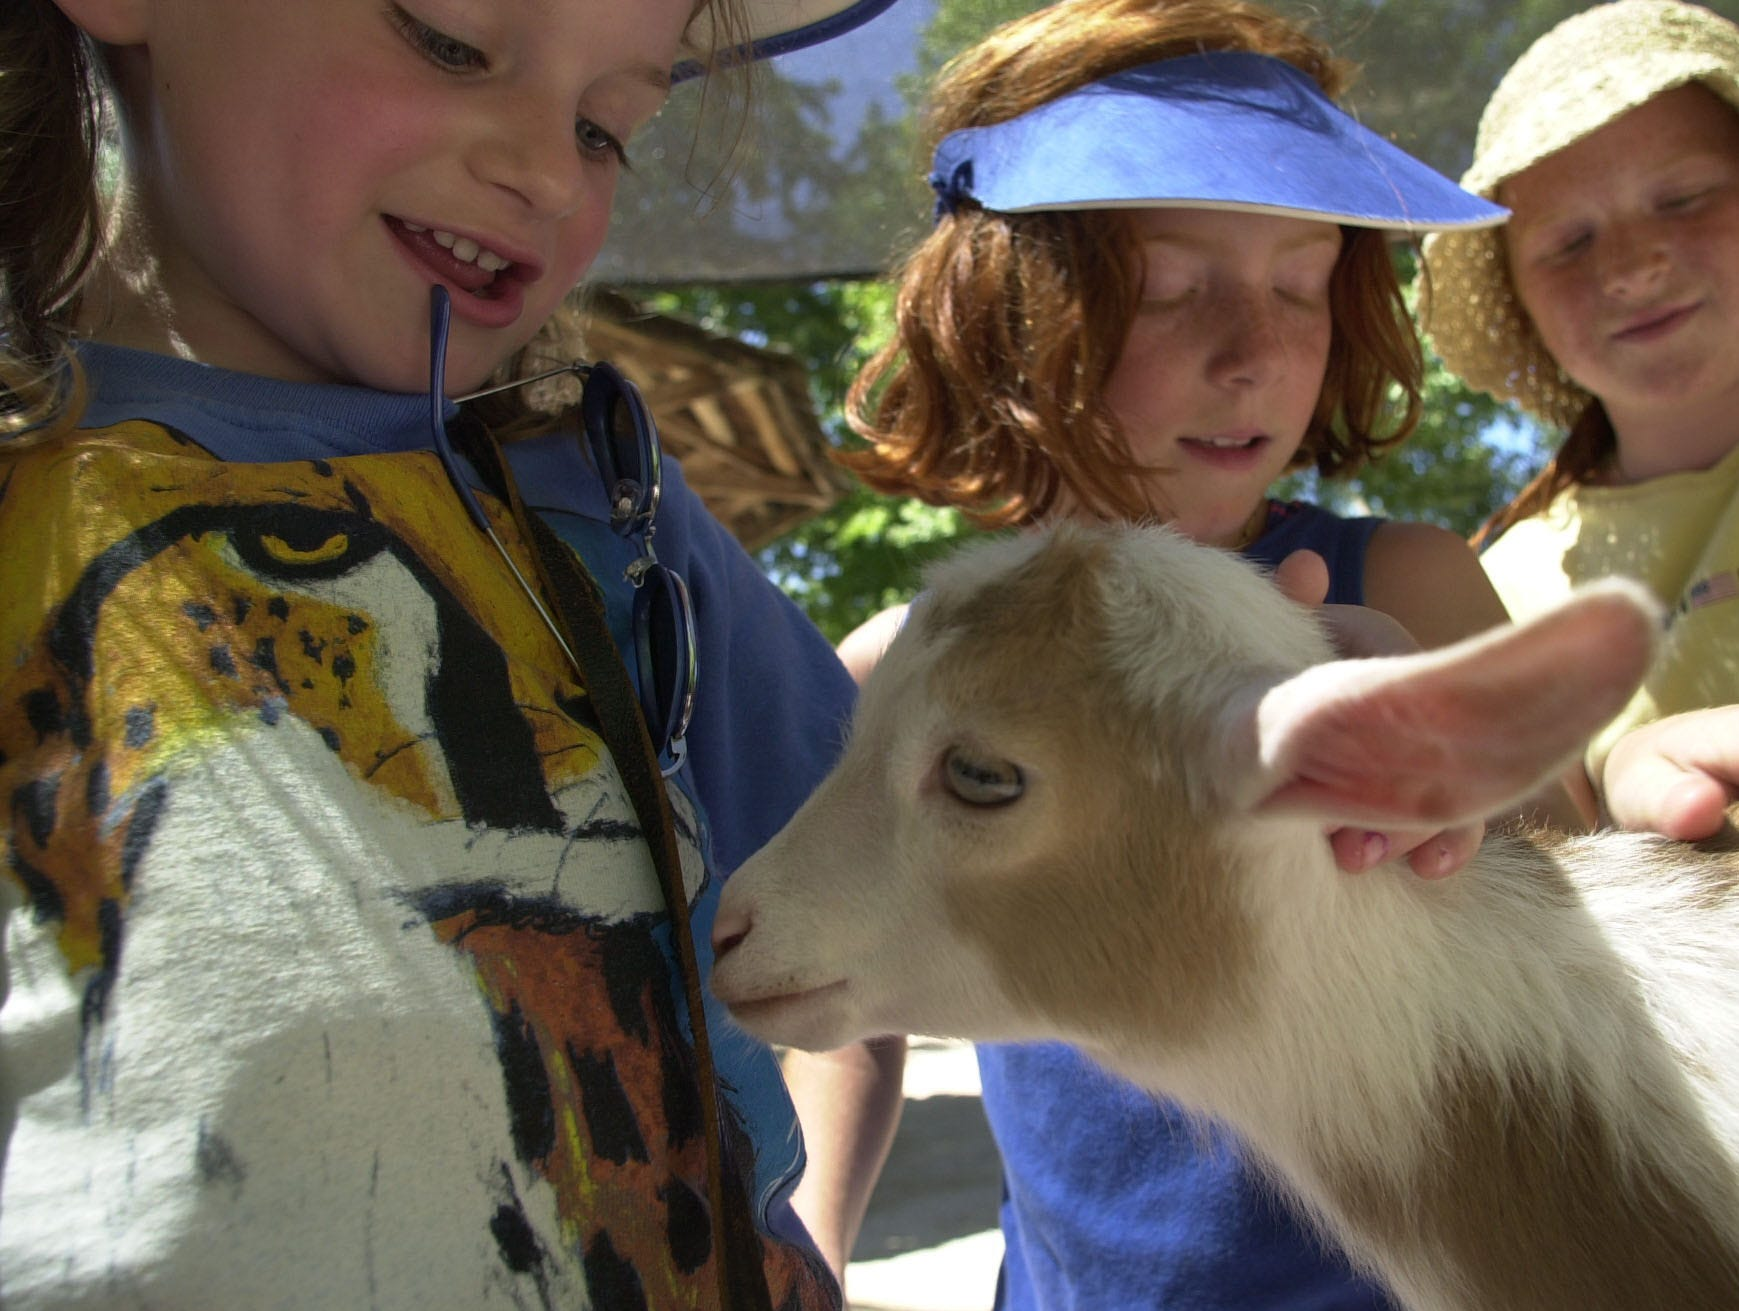 Feta, a Nigerian Dwarf baby goat, is surrounded by children as she makes her debut Monday, June 18, 2001 at the Knoxville Zoo in Knoxville, Tenn.  Eager to greet her are, from left,  Katie Williford, 5, of Raleigh-Durham, N.C.,  and her cousins Casey Fitzgerald, 8, and Erin Fitzgerald, 11, both of Knoxville. Feta is one of six Nigerian Dwarf baby goats introduced to the petting zoo on Monday. Each is named for a type of cheese.